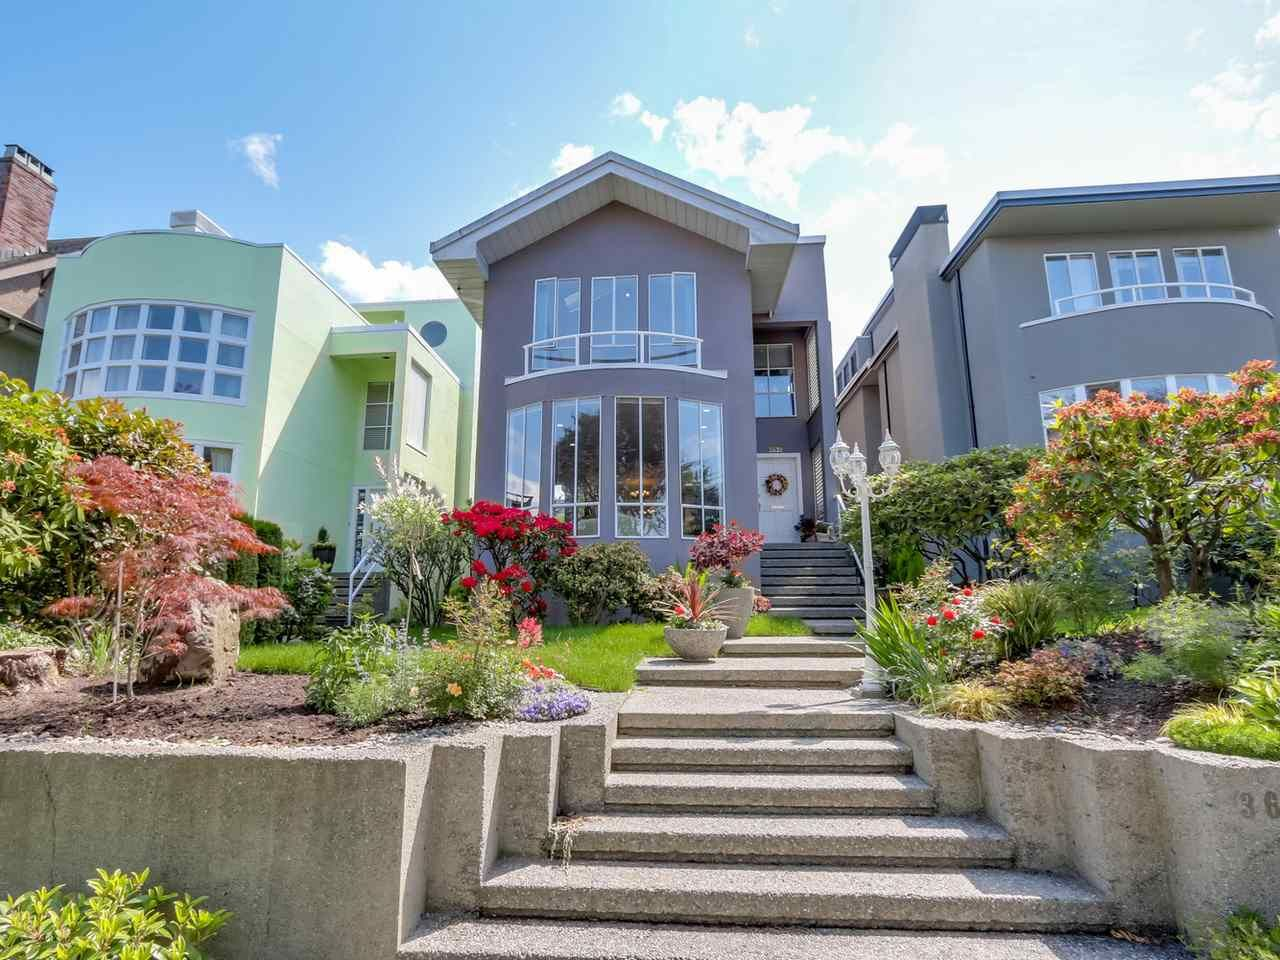 Main Photo: 3632 W 14TH Avenue in Vancouver: Point Grey House for sale (Vancouver West)  : MLS®# R2073336